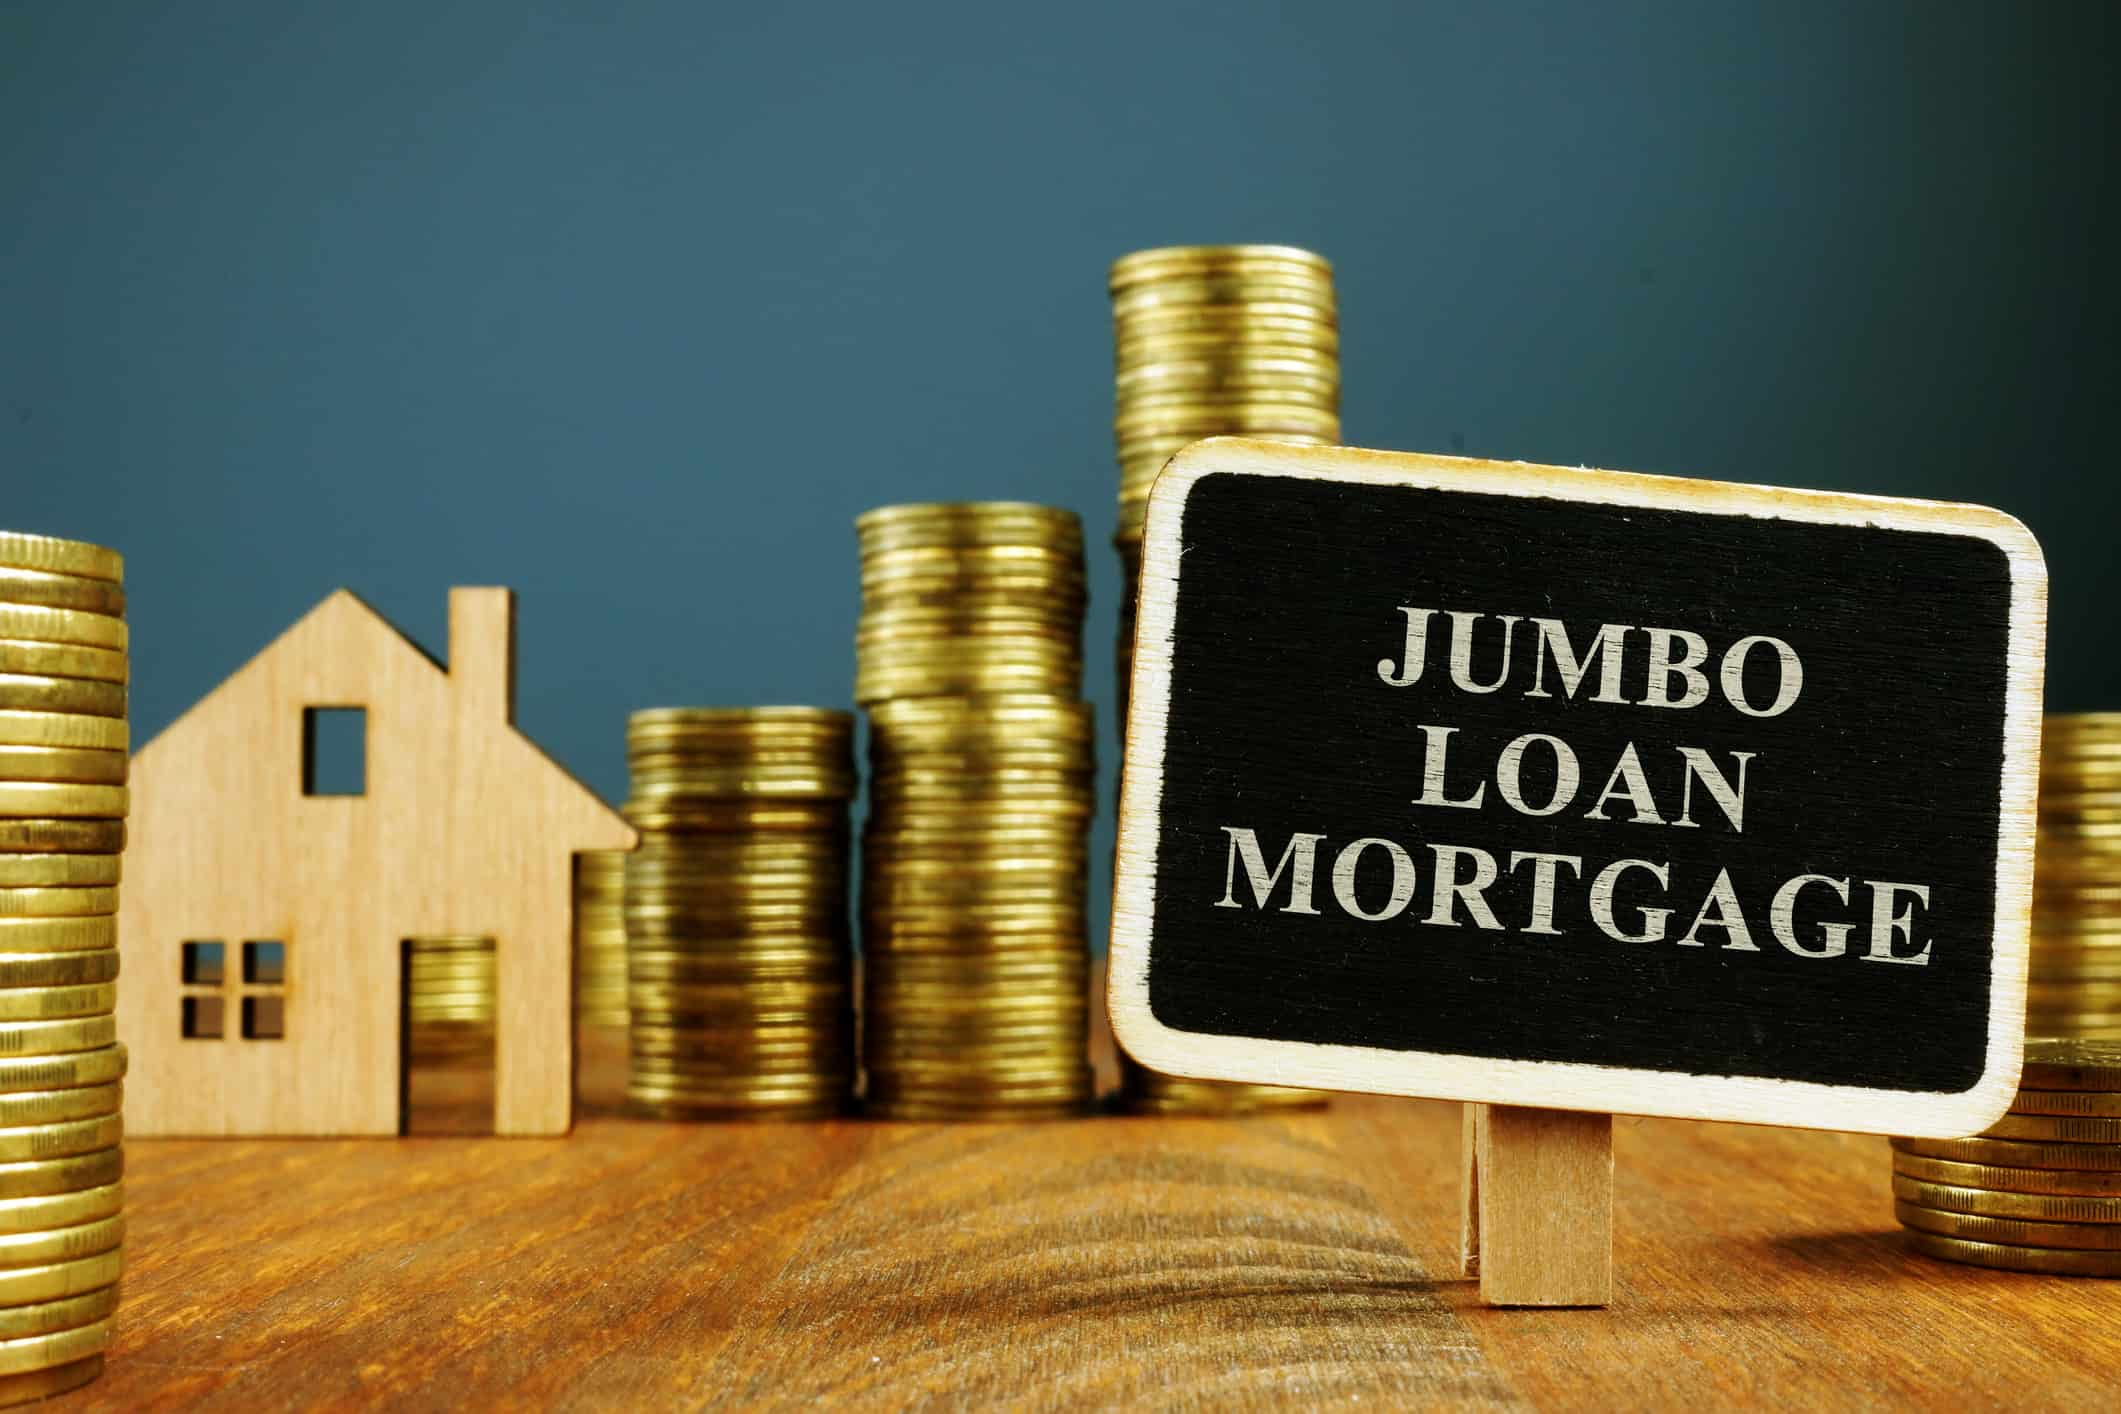 jumbo loan mortgage